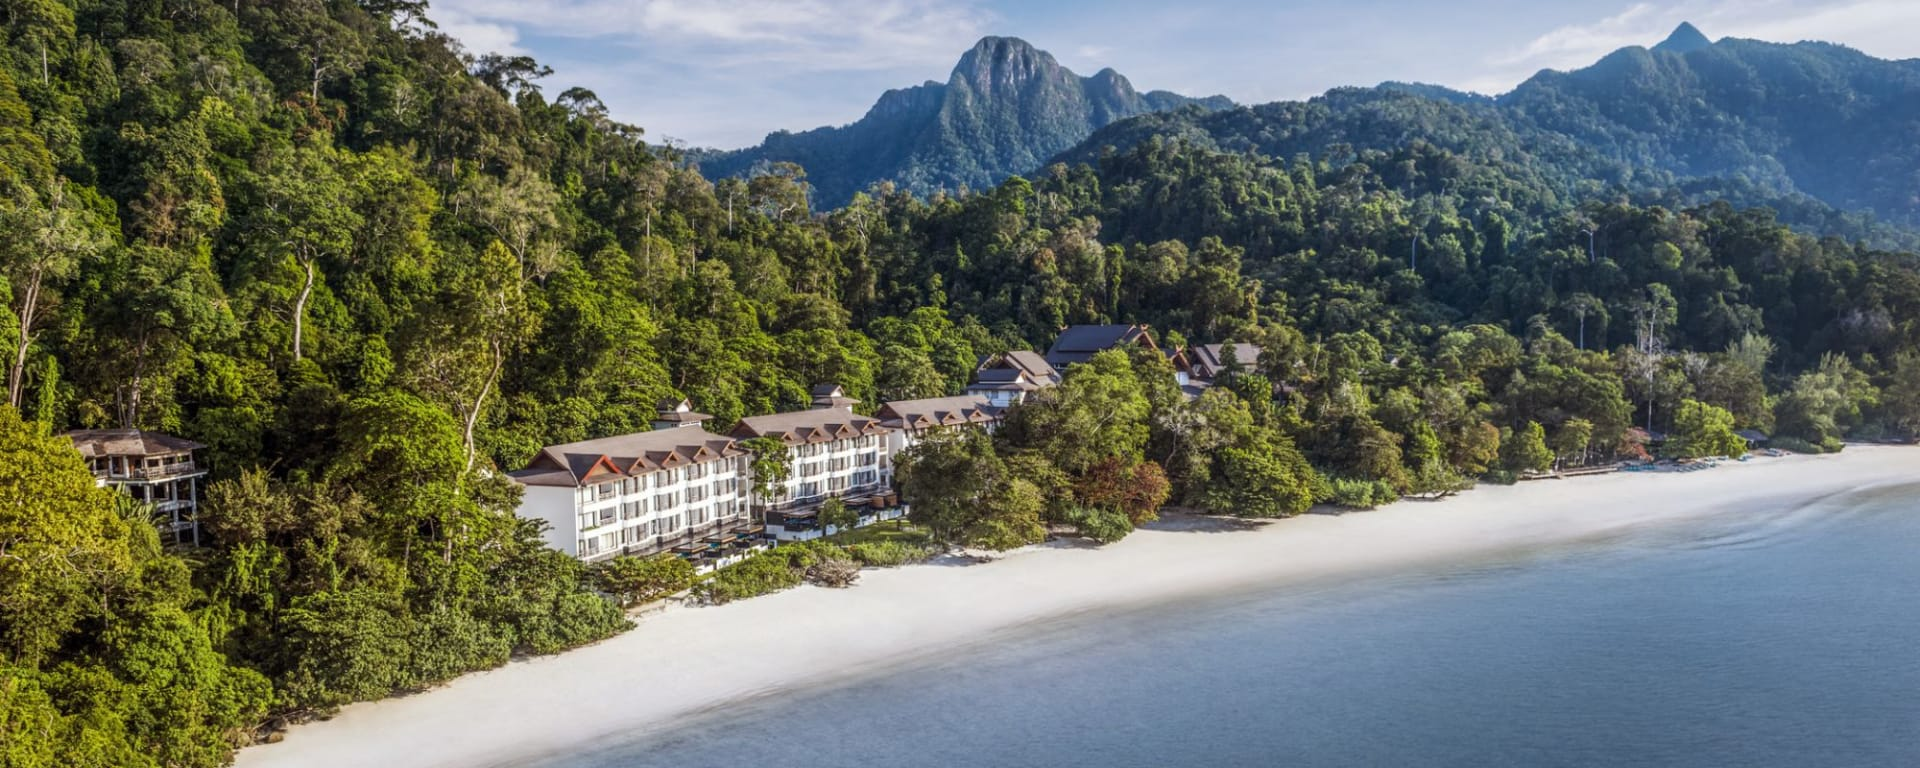 The Andaman à Langkawi: The Andaman uniquely set in the rainforest between the Mat Cincang mountain